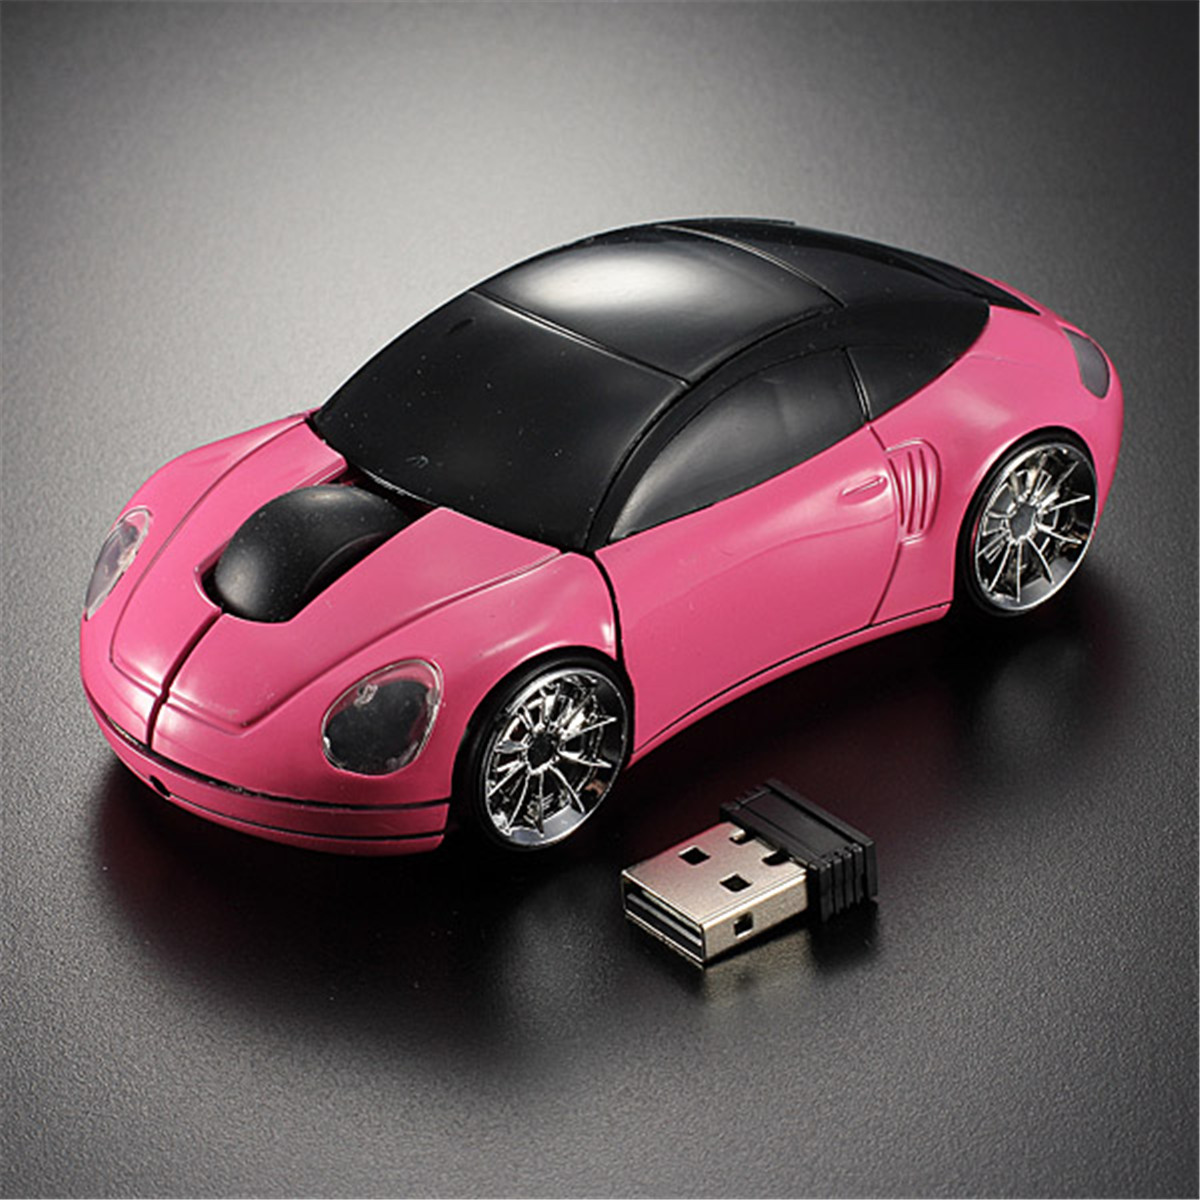 Computer Accessories 1600DPI 2.4GHz 3D Car Shape Mice Wireless Optical Mouse USB Receiver for PC Laptop